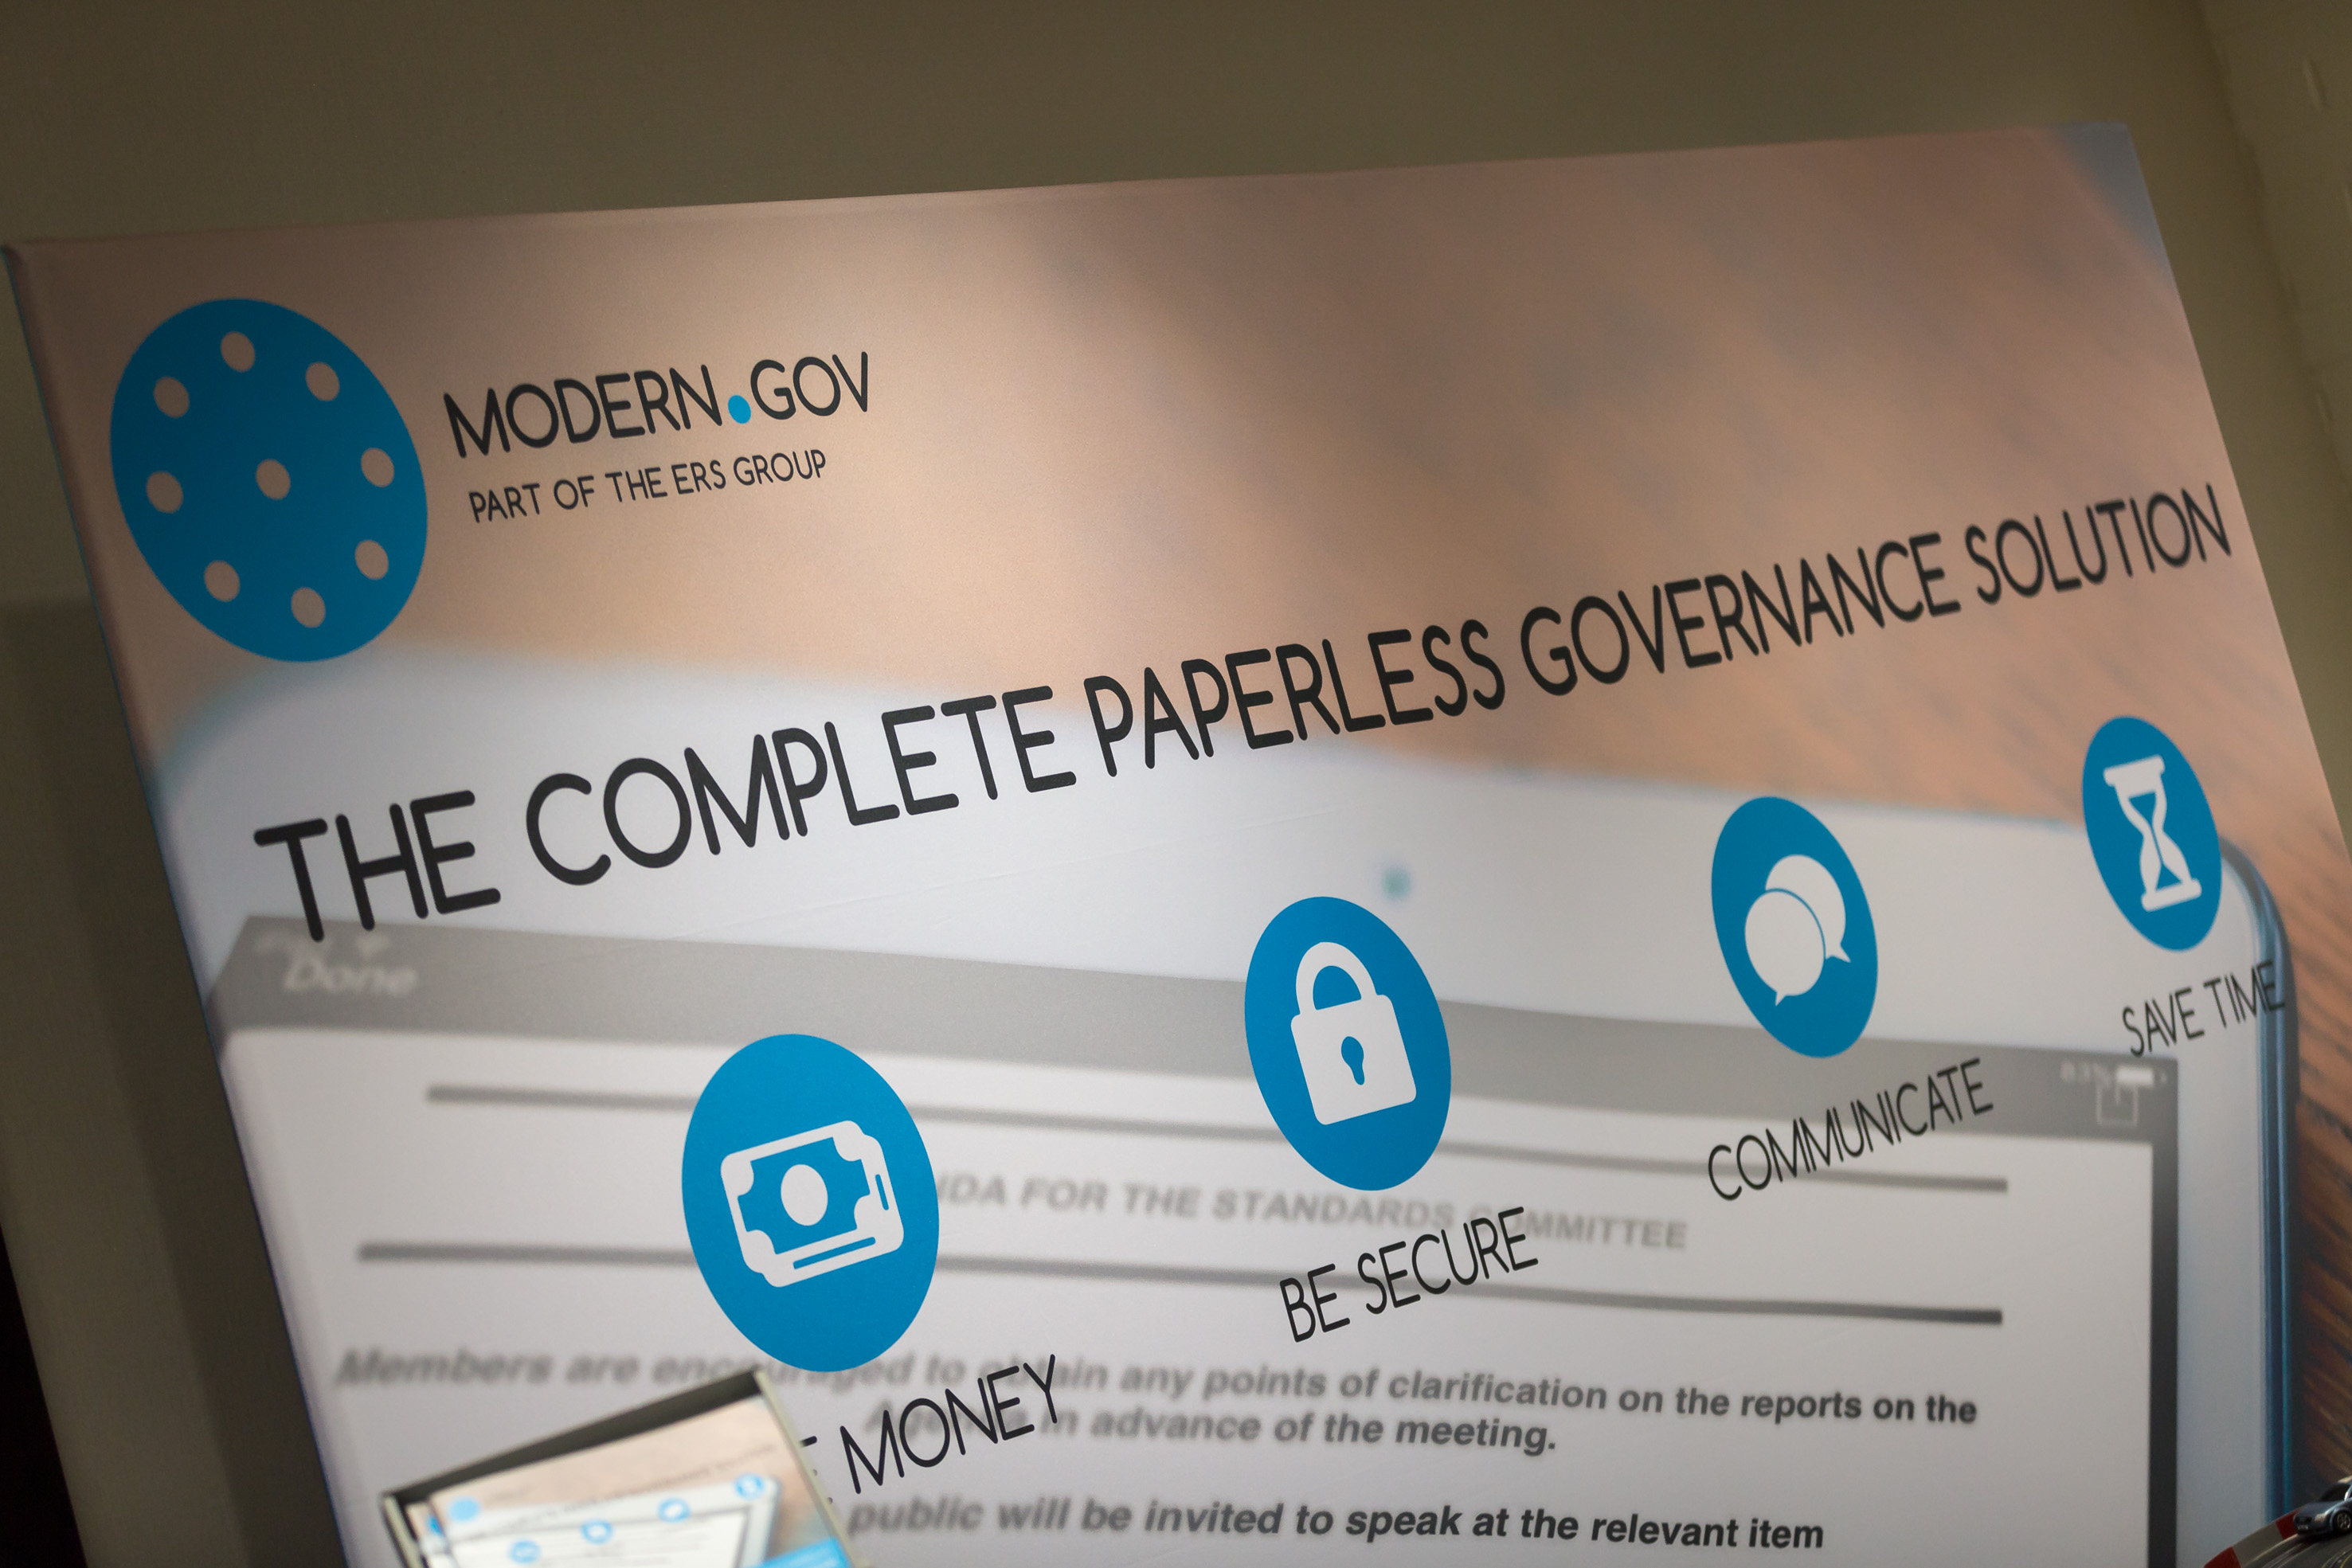 modern.gov our main sponsor